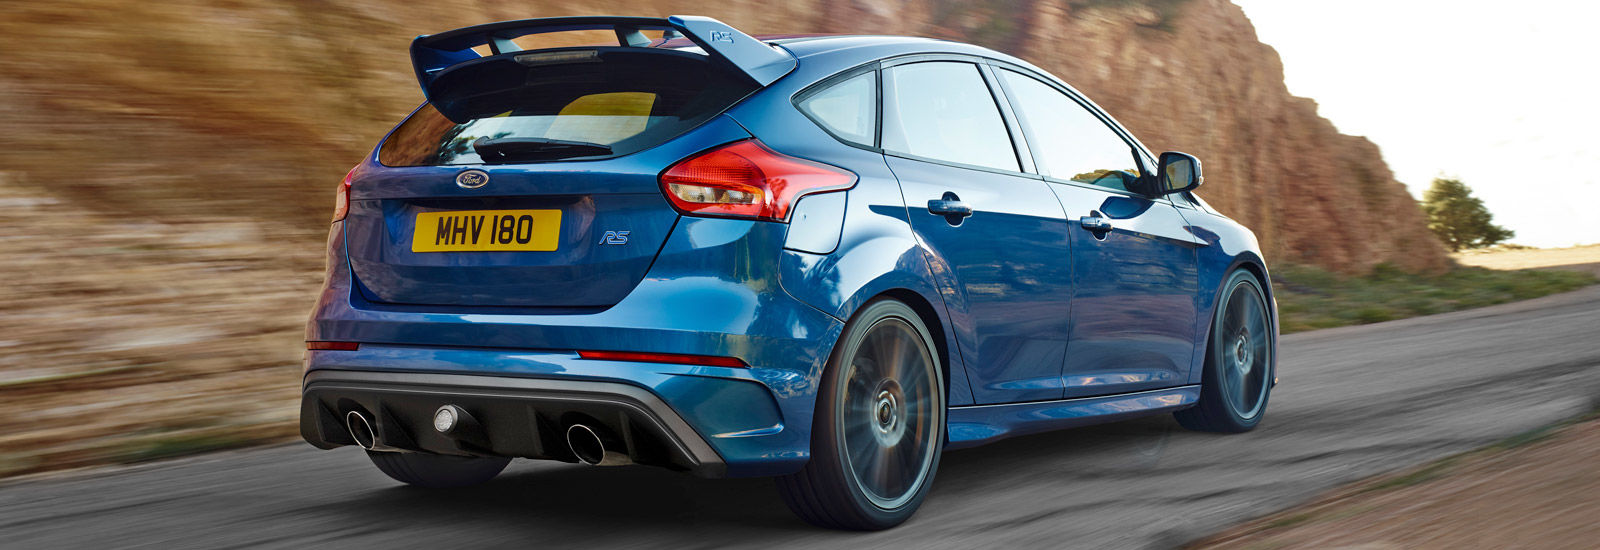 Faster Ford Focus RS rumoured RS500 successor